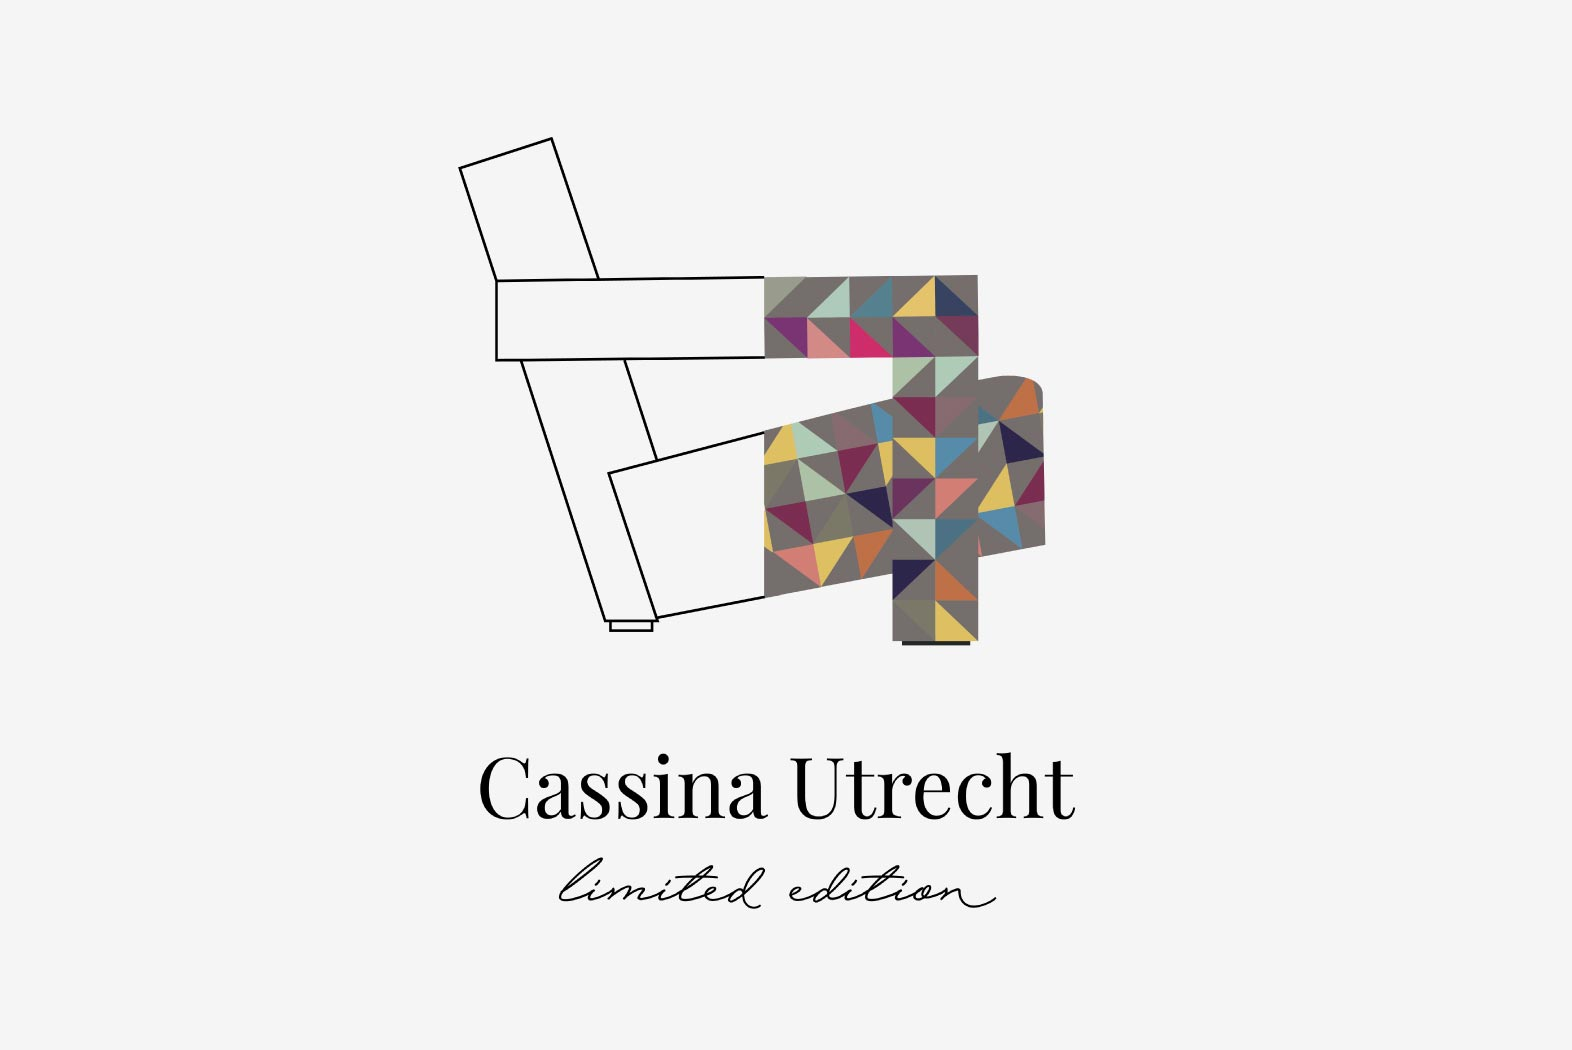 limited edition cassina